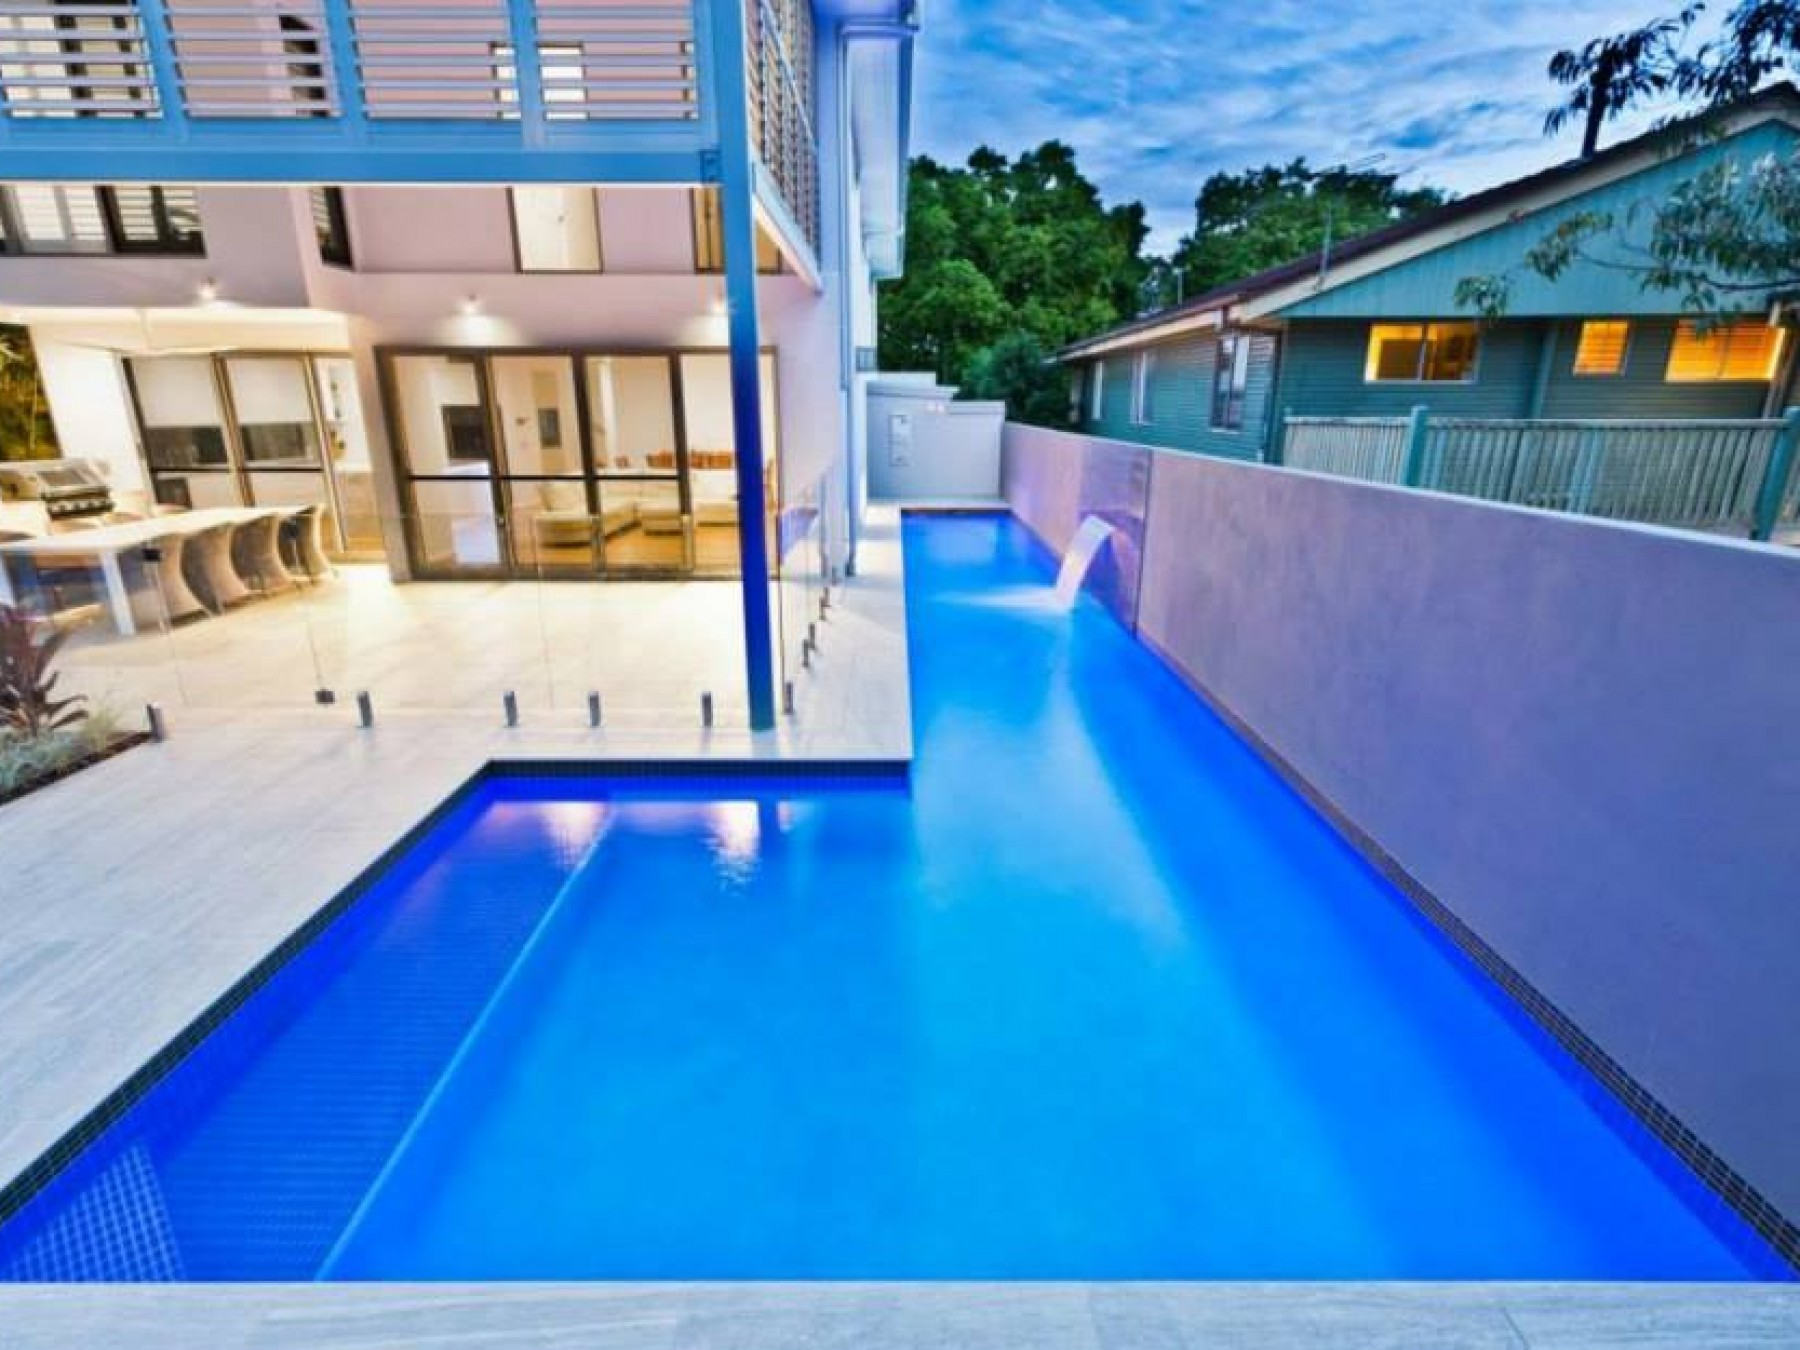 Selling or Leasing a pool in Balmoral